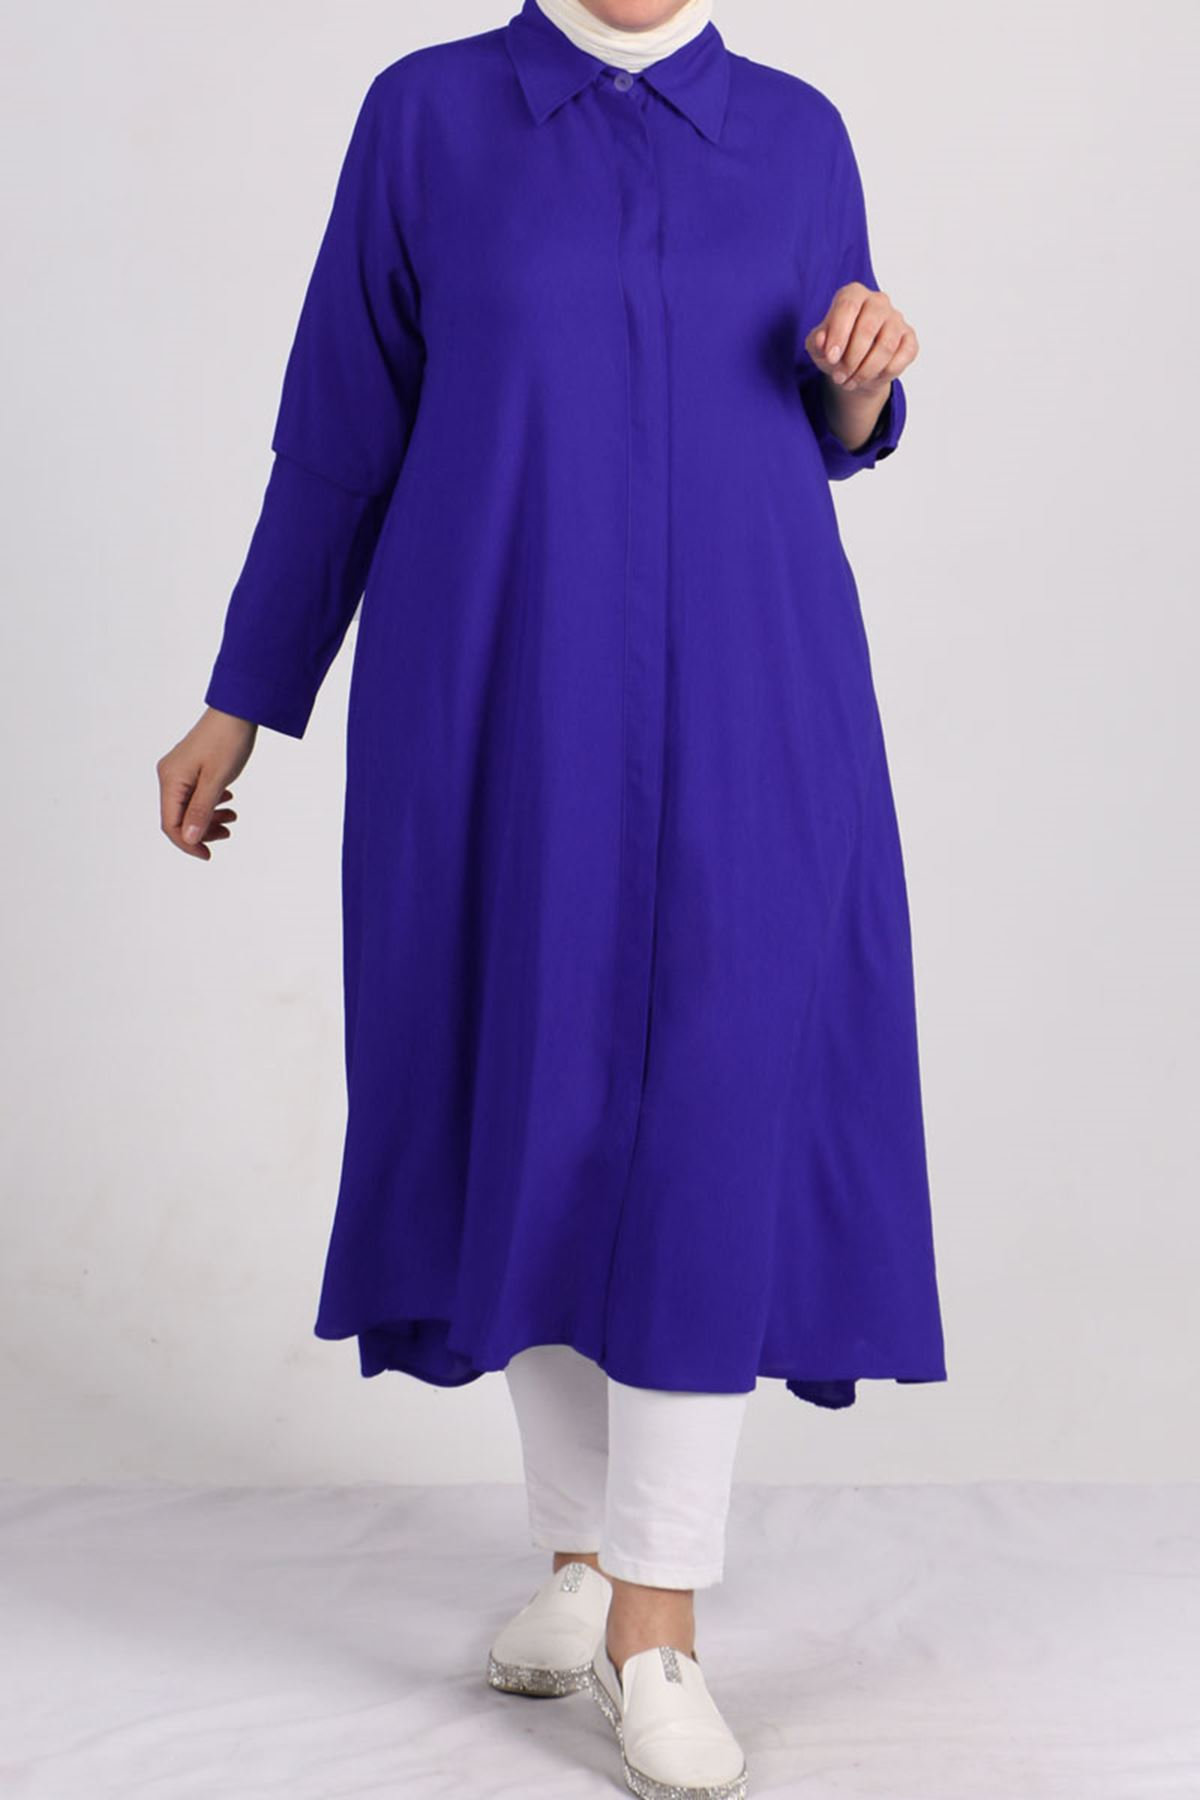 8461 Oversize Hidden Buttoned Shirt - Saxe